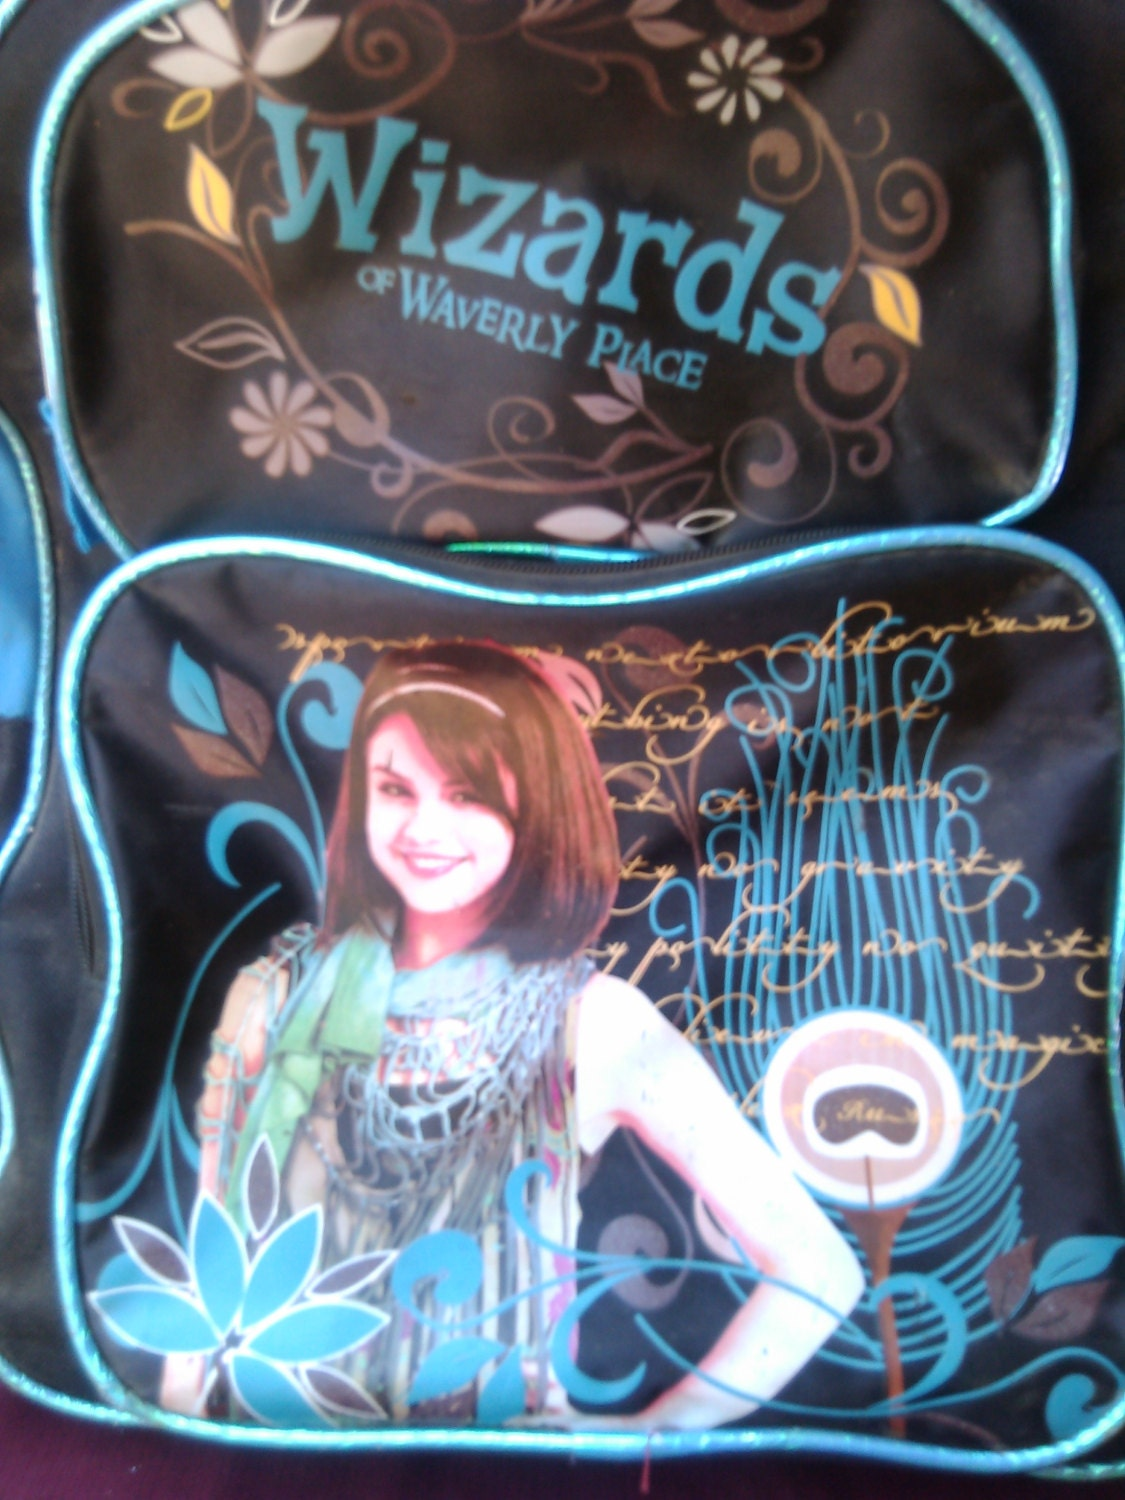 2 Set Wizards Of Waverly Place Backpack Lunch Box Alex School Bag Disney New additionally Wizards Of Waverly Place Backpack further Hocus Pocus Style Ranking besides Fancy 20Spellbook together with DISNEY WIZARDS WAVERLY PLACE Flower BACKPACK ALEX RUSSO EBay. on wizards of waverly place backpack